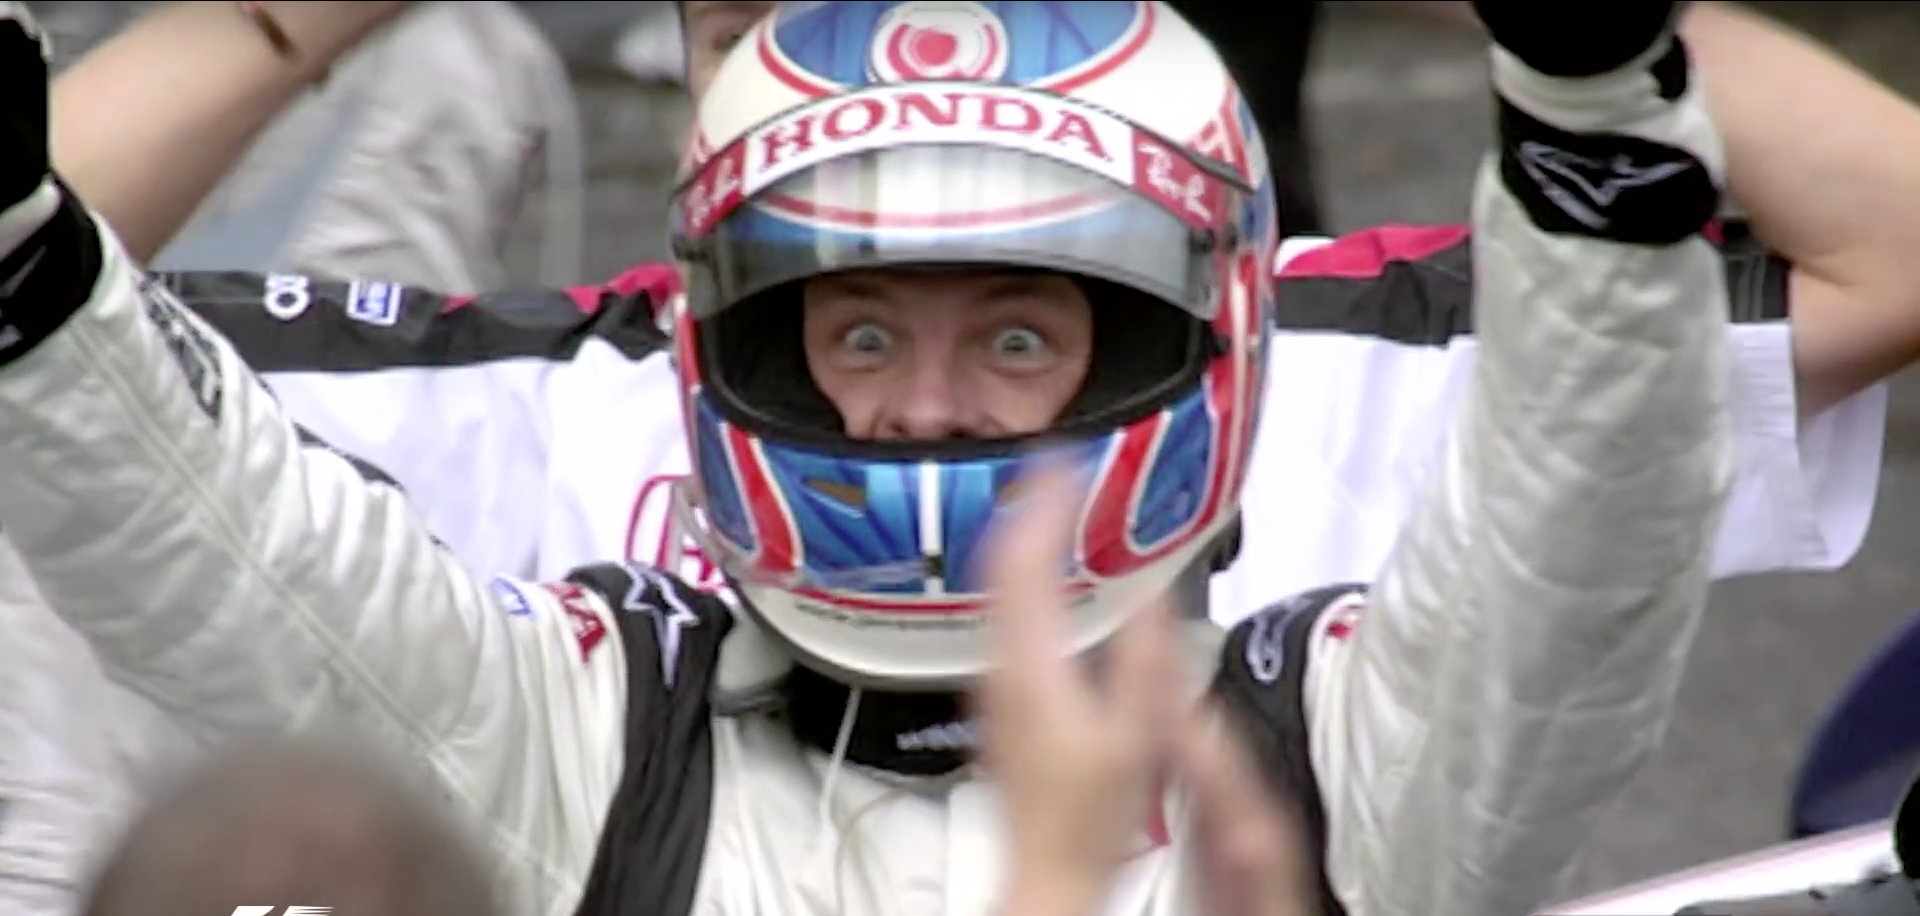 We Celebrate Jenson Button's Top F1 Moments As He Prepares To Take Some Time Off